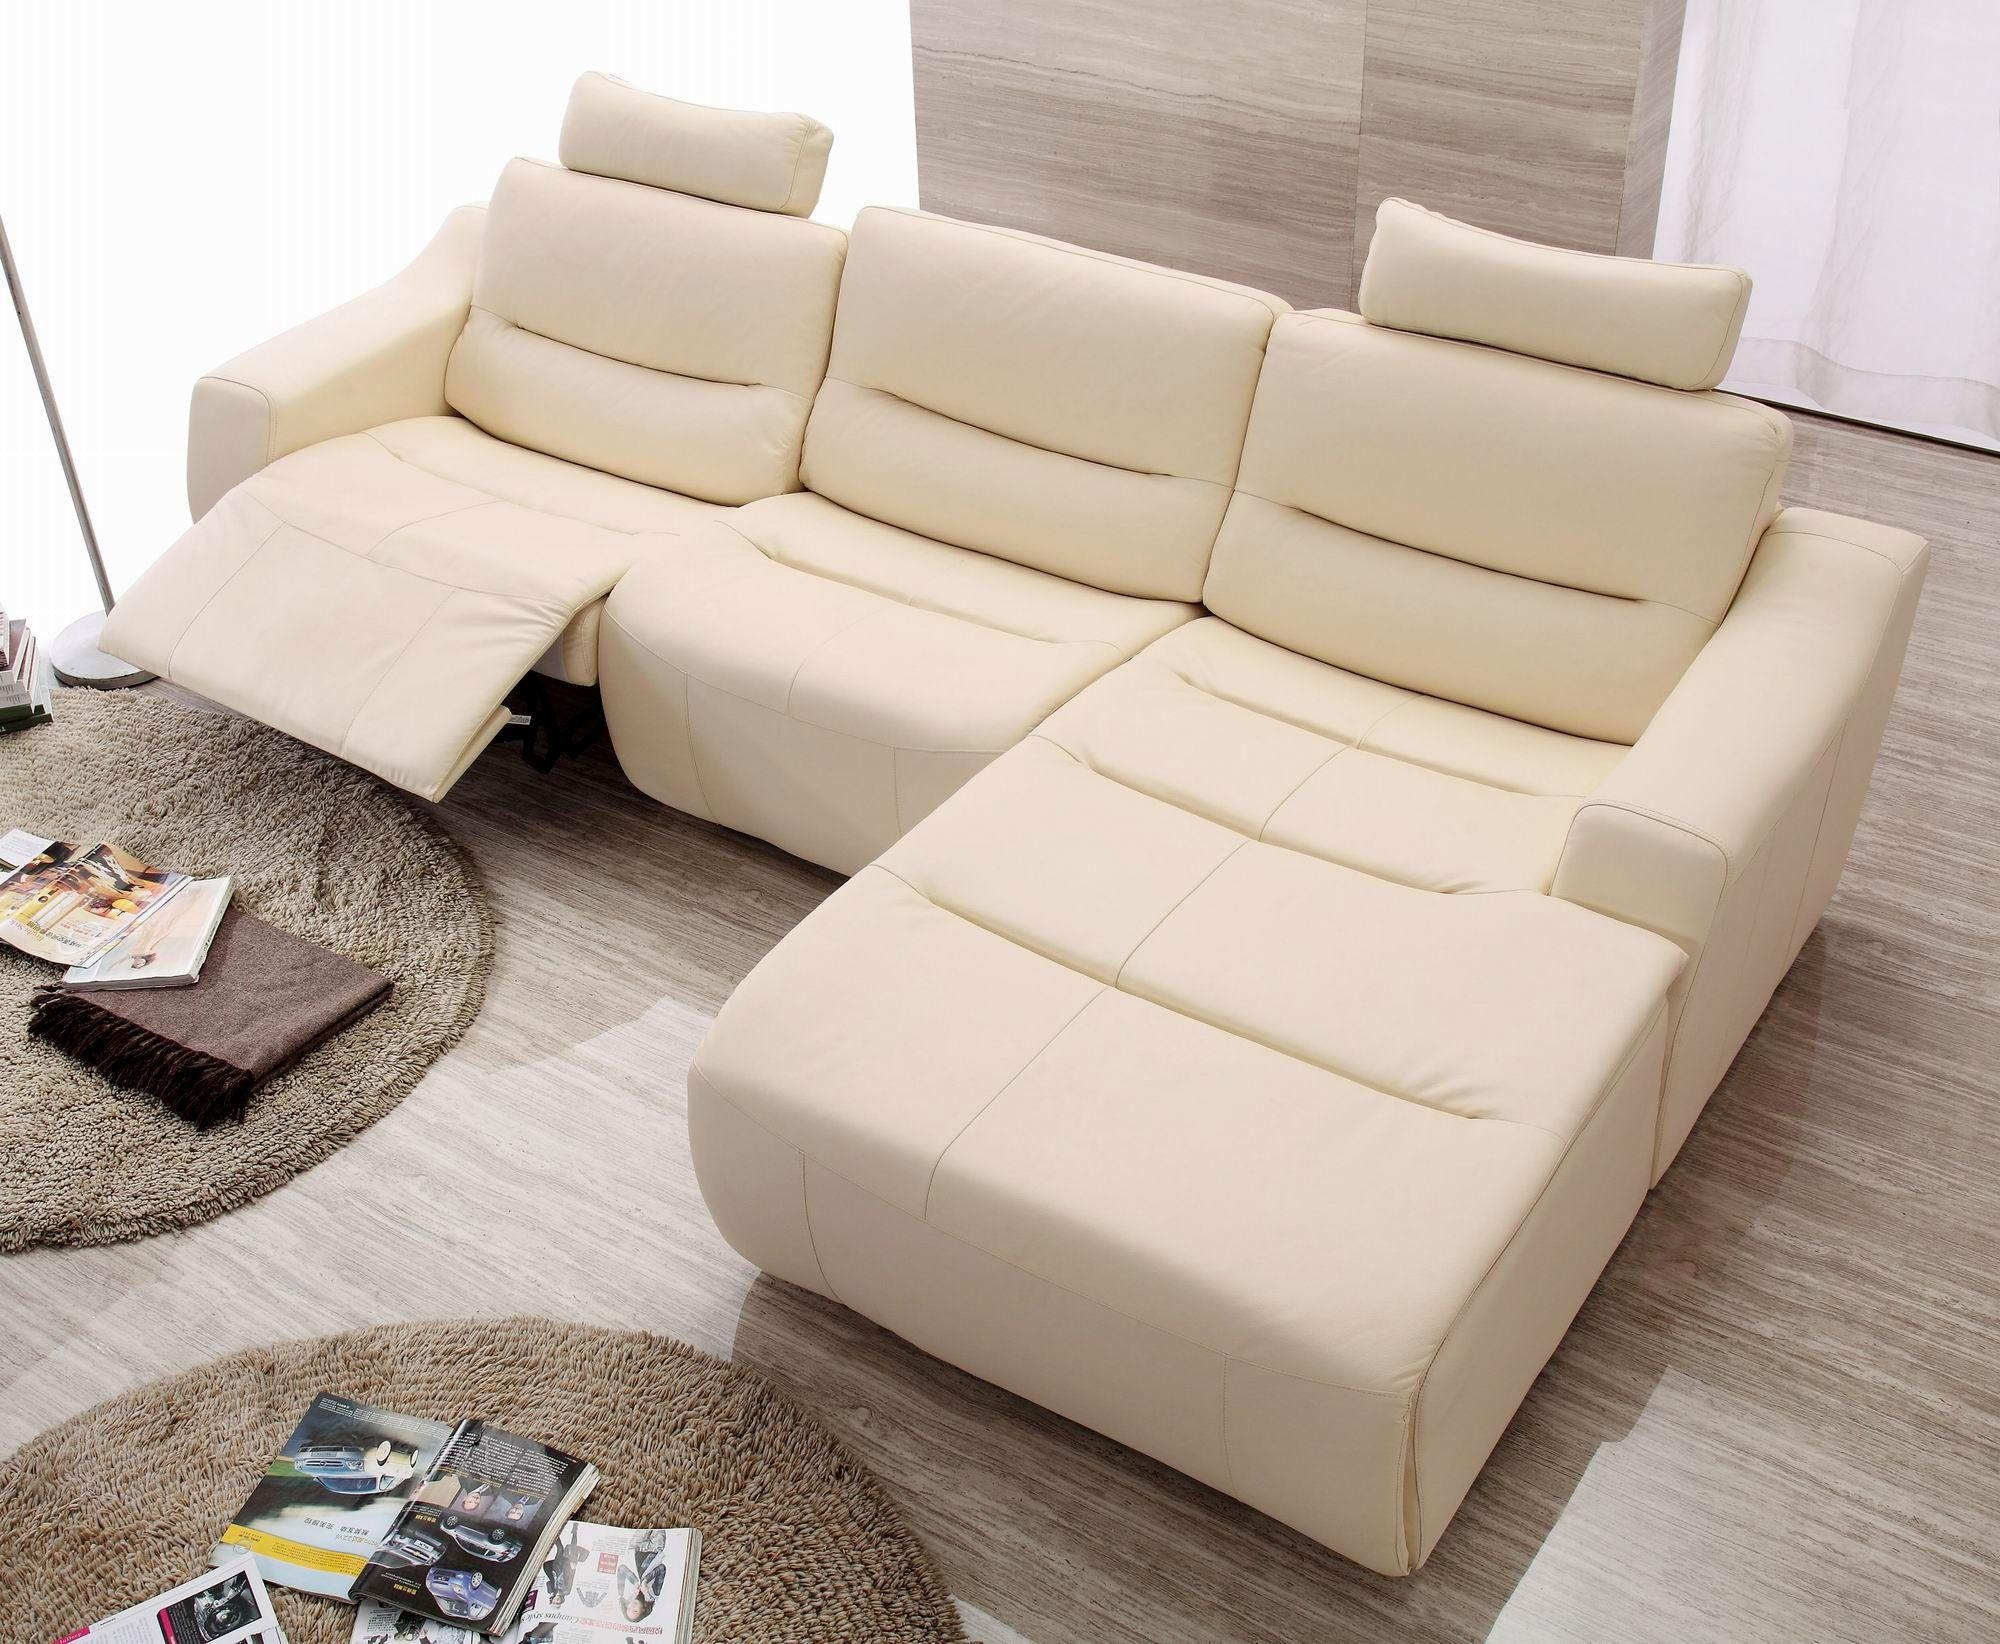 Contemporary Sectional Sofas For Small Spaces #9270 With Modern Sectional Sofas For Small Spaces (Image 6 of 20)